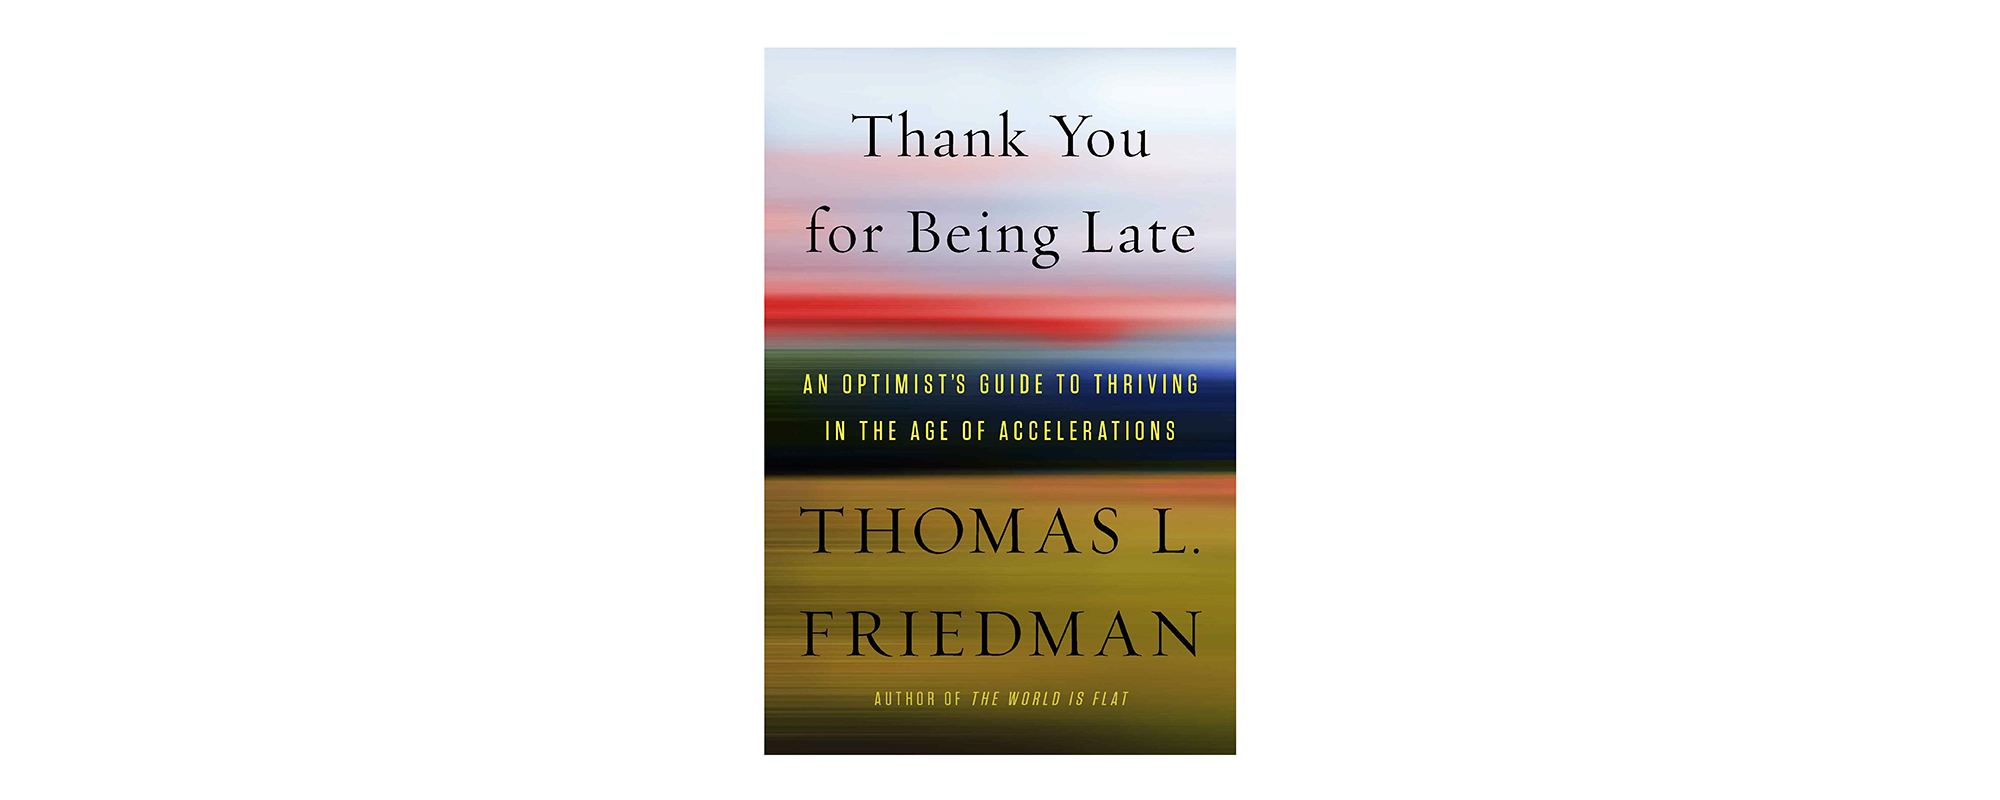 Thank You For Being Late: An Optimist's Guide to Thriving in the Age of Accelerationsby Thomas Friedman